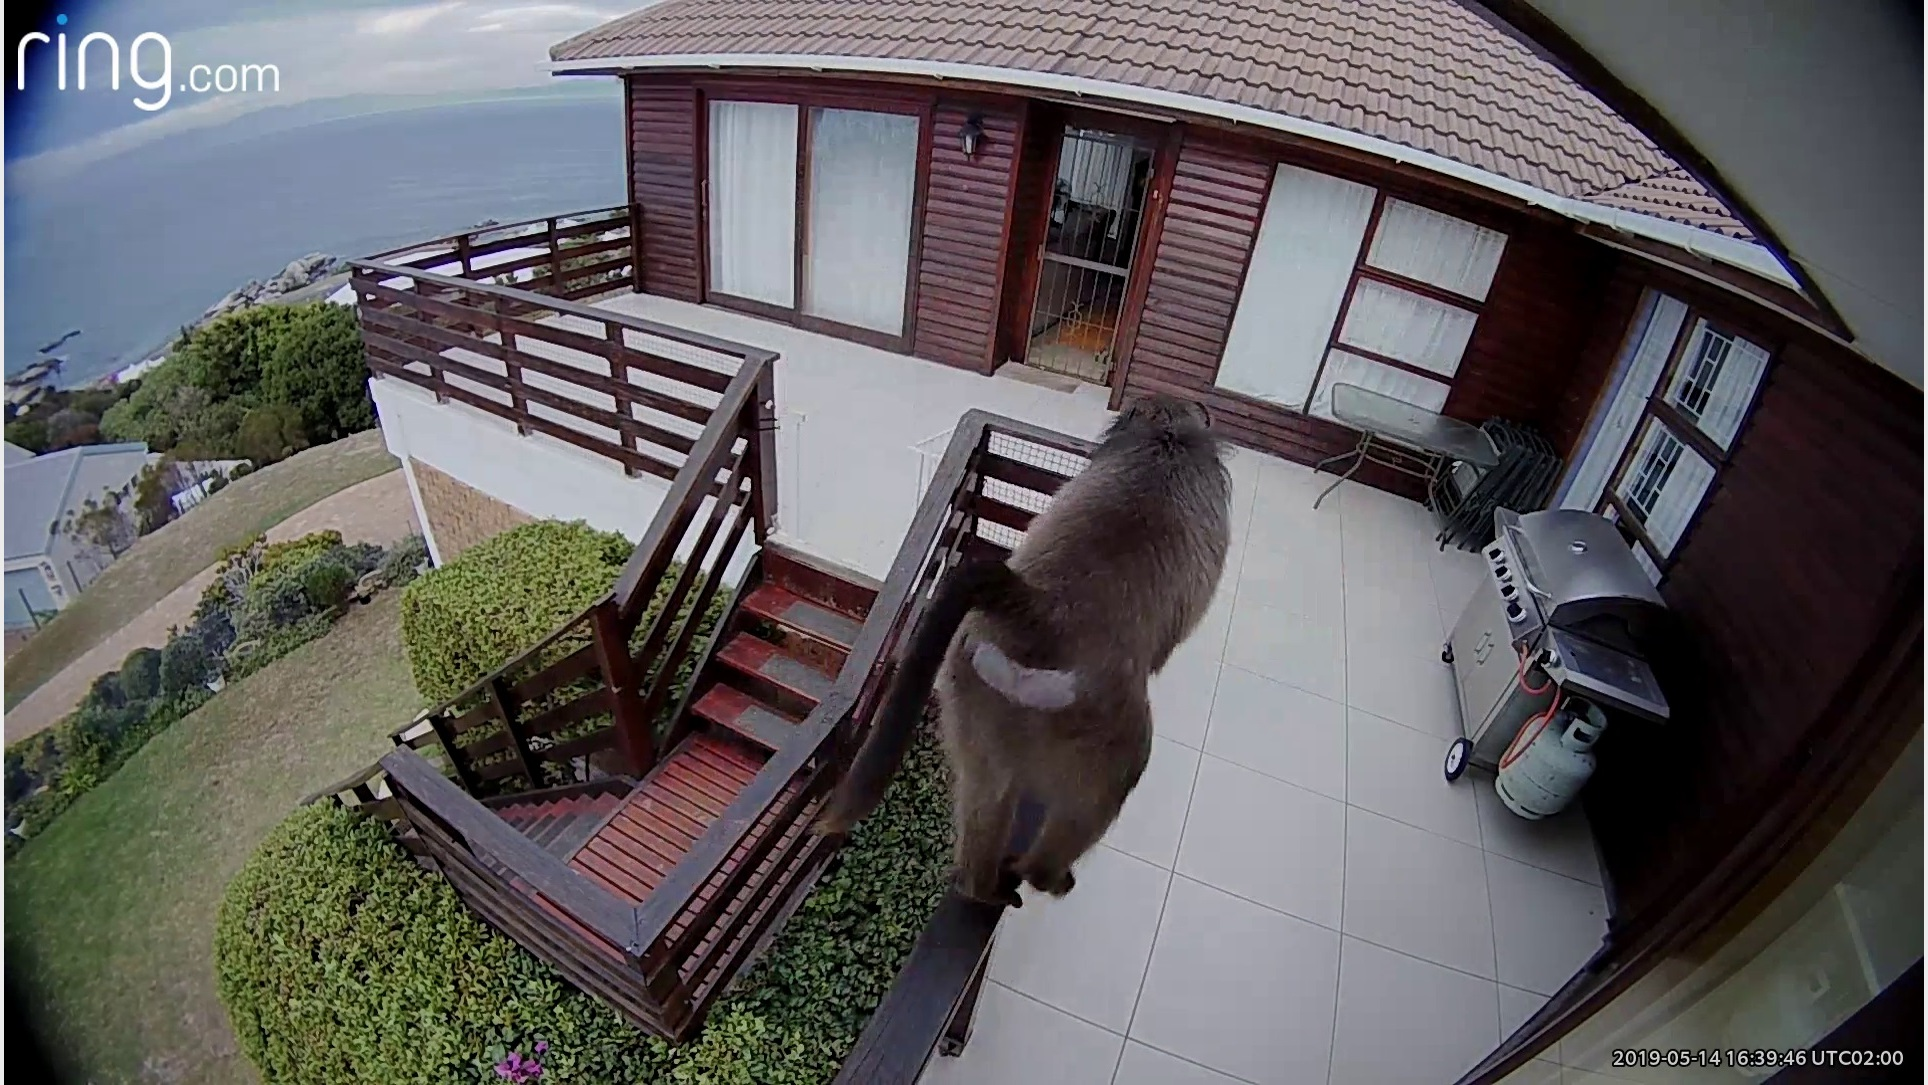 Watch: Baboon attempts to break into home in South Africa